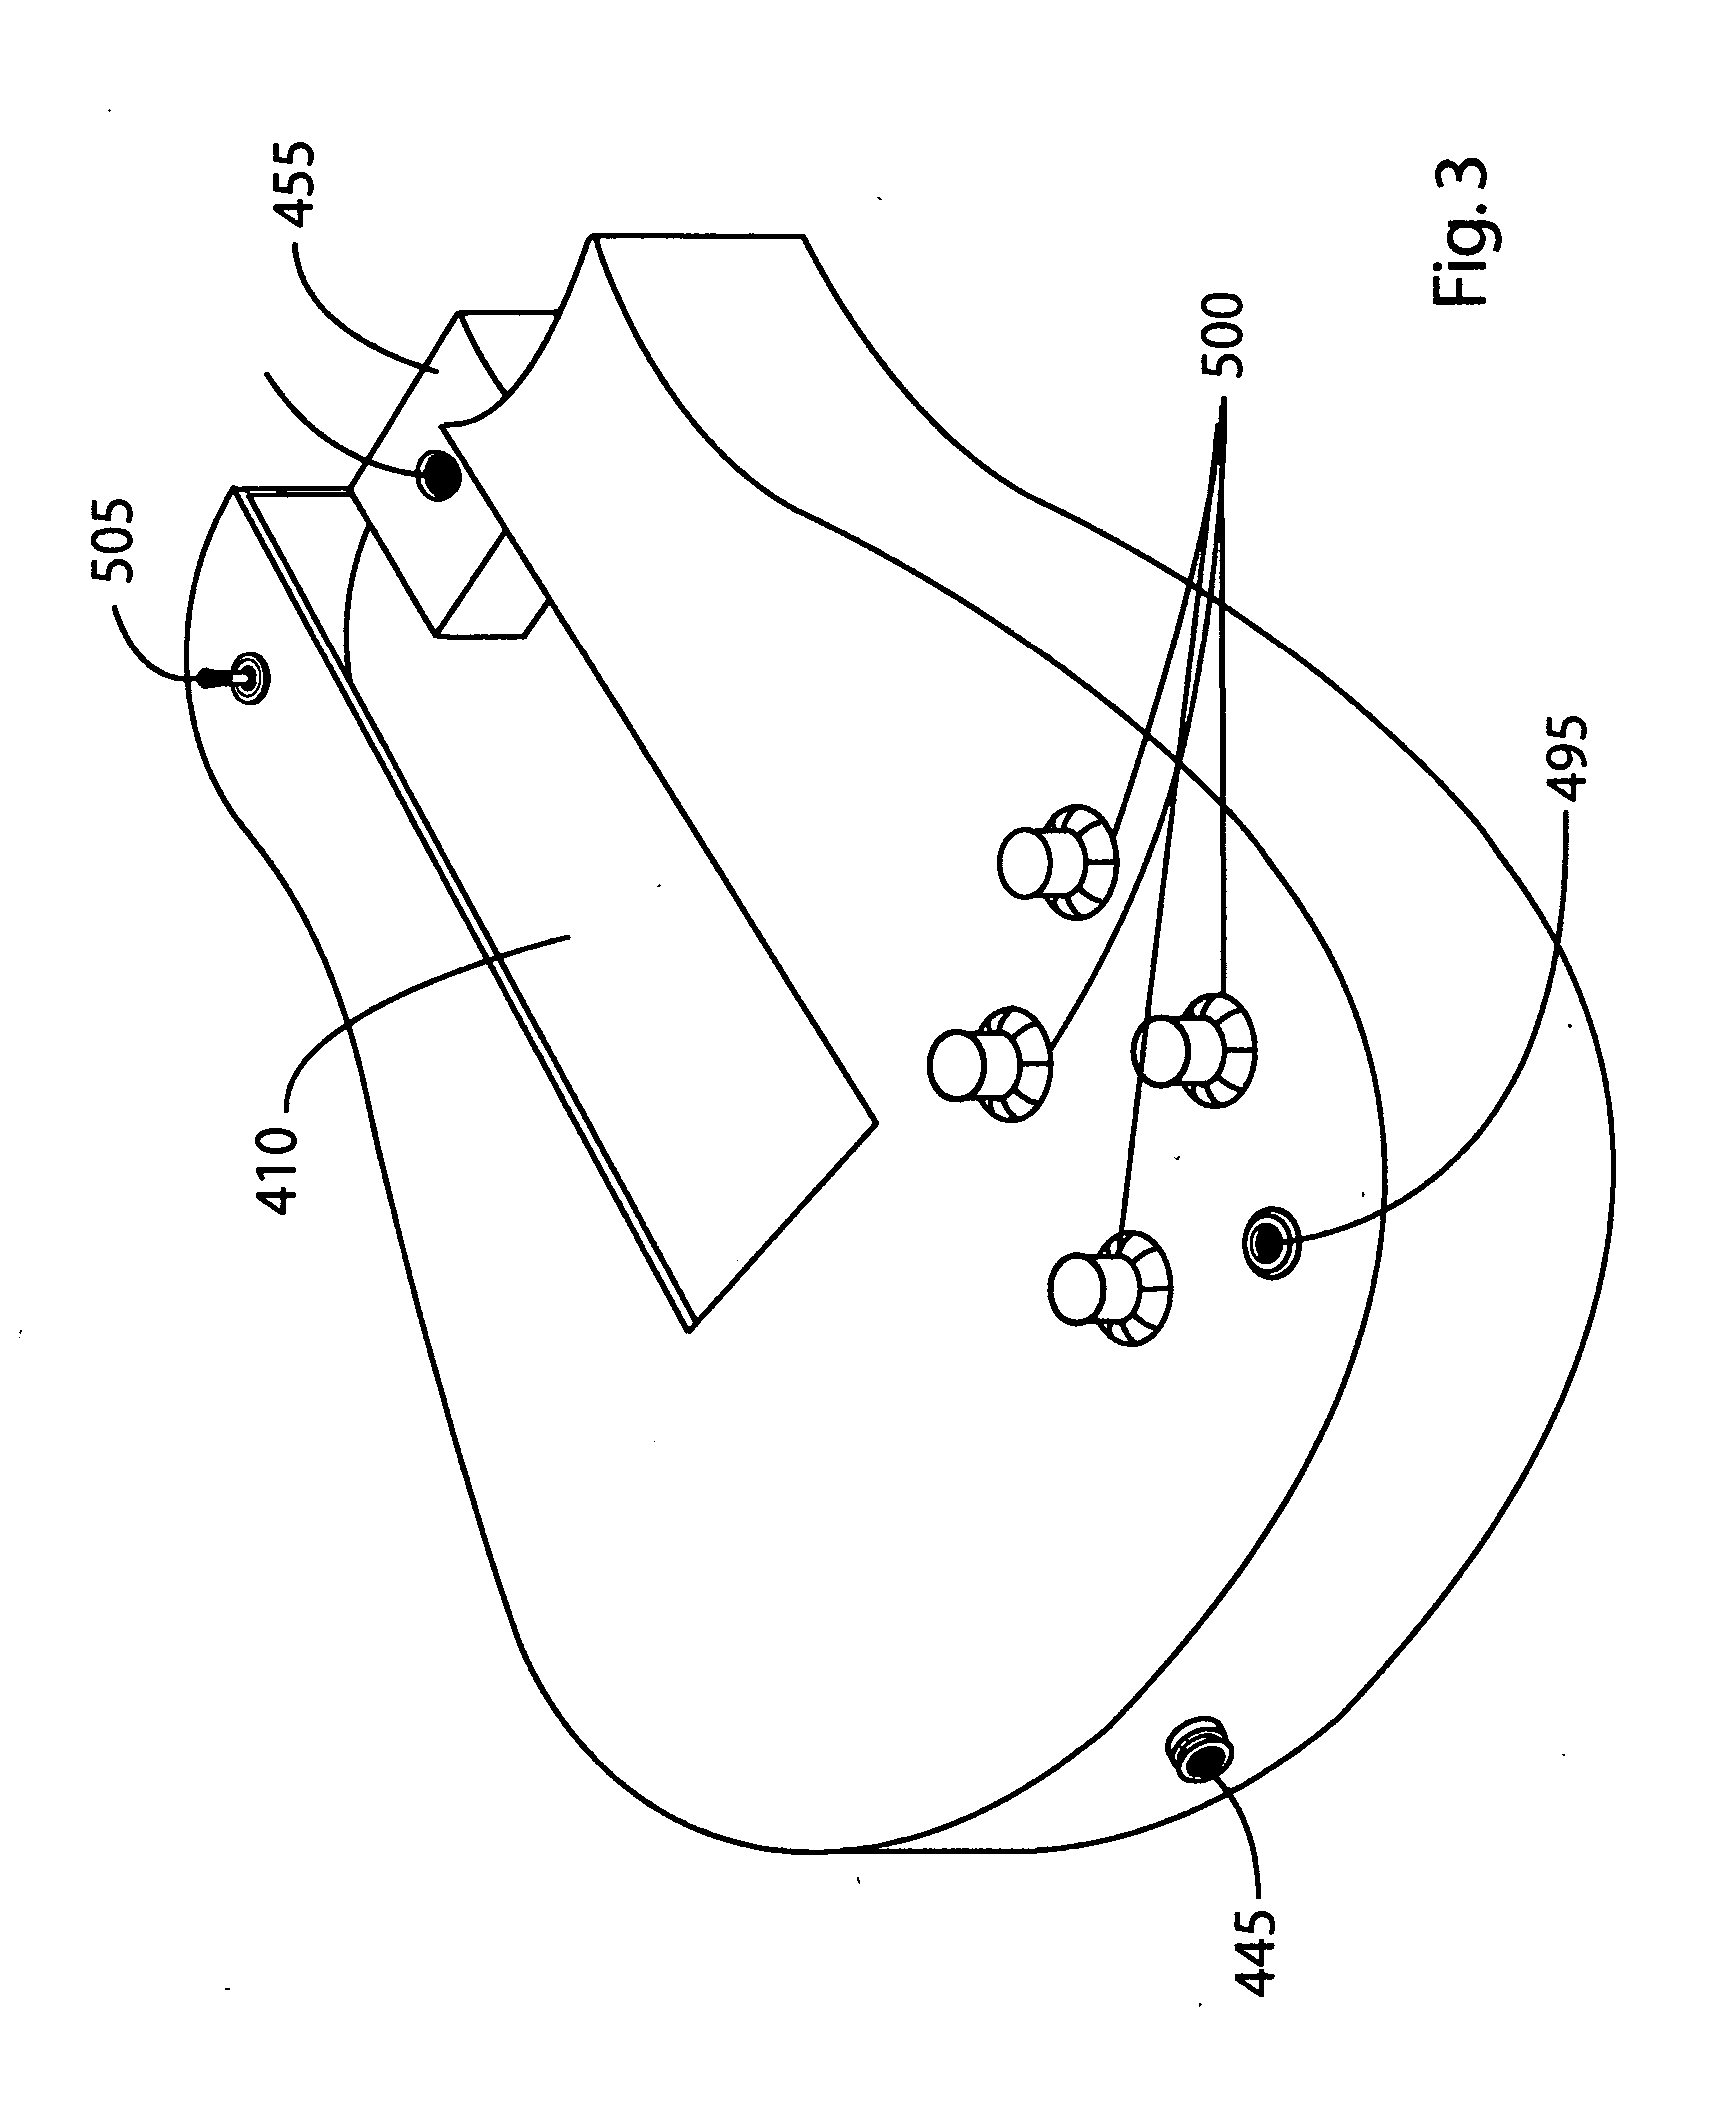 wiring diagram stratocaster pickups images fender jazz b pickup wiring diagram wiring diagram as